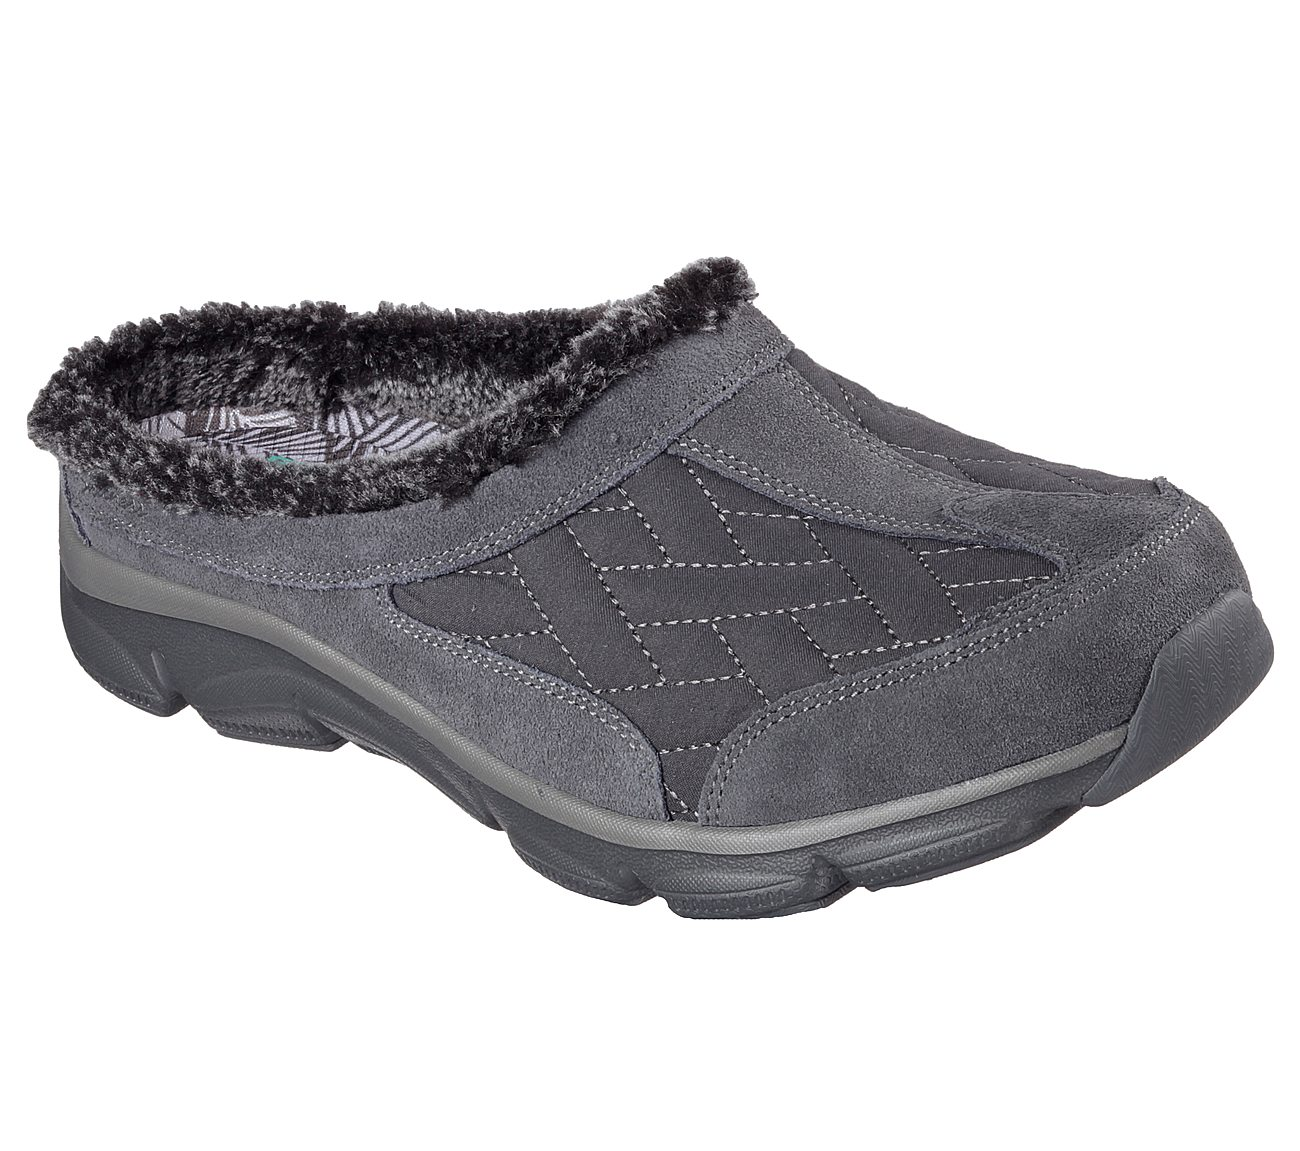 bf029466df00 Buy SKECHERS Relaxed Fit  Comfy Living - Chillax Comfort Shoes Shoes ...